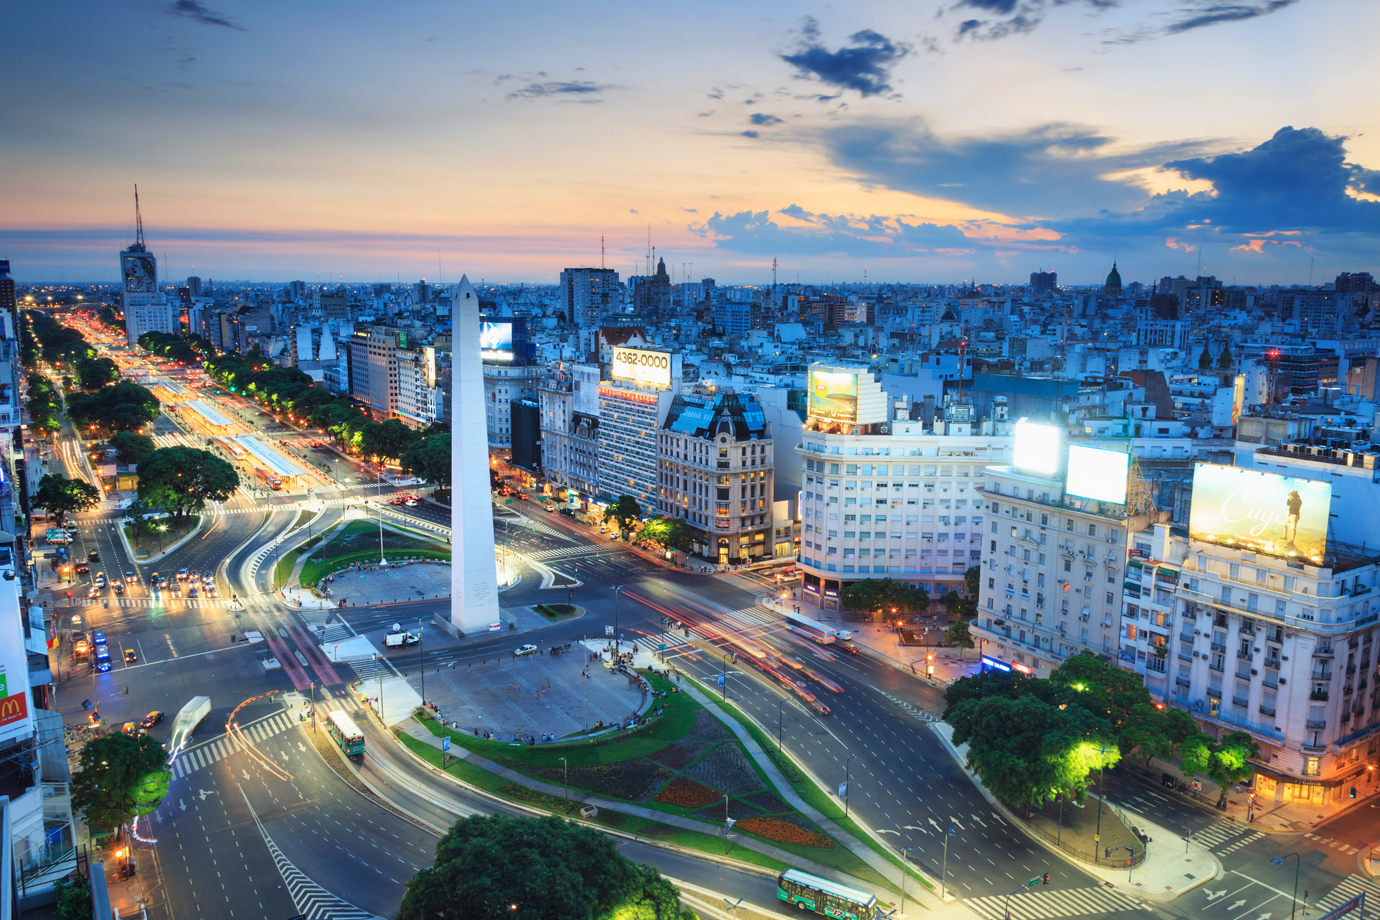 Steak, Malbec, and Tango: The 4-day Weekend in Buenos Aires